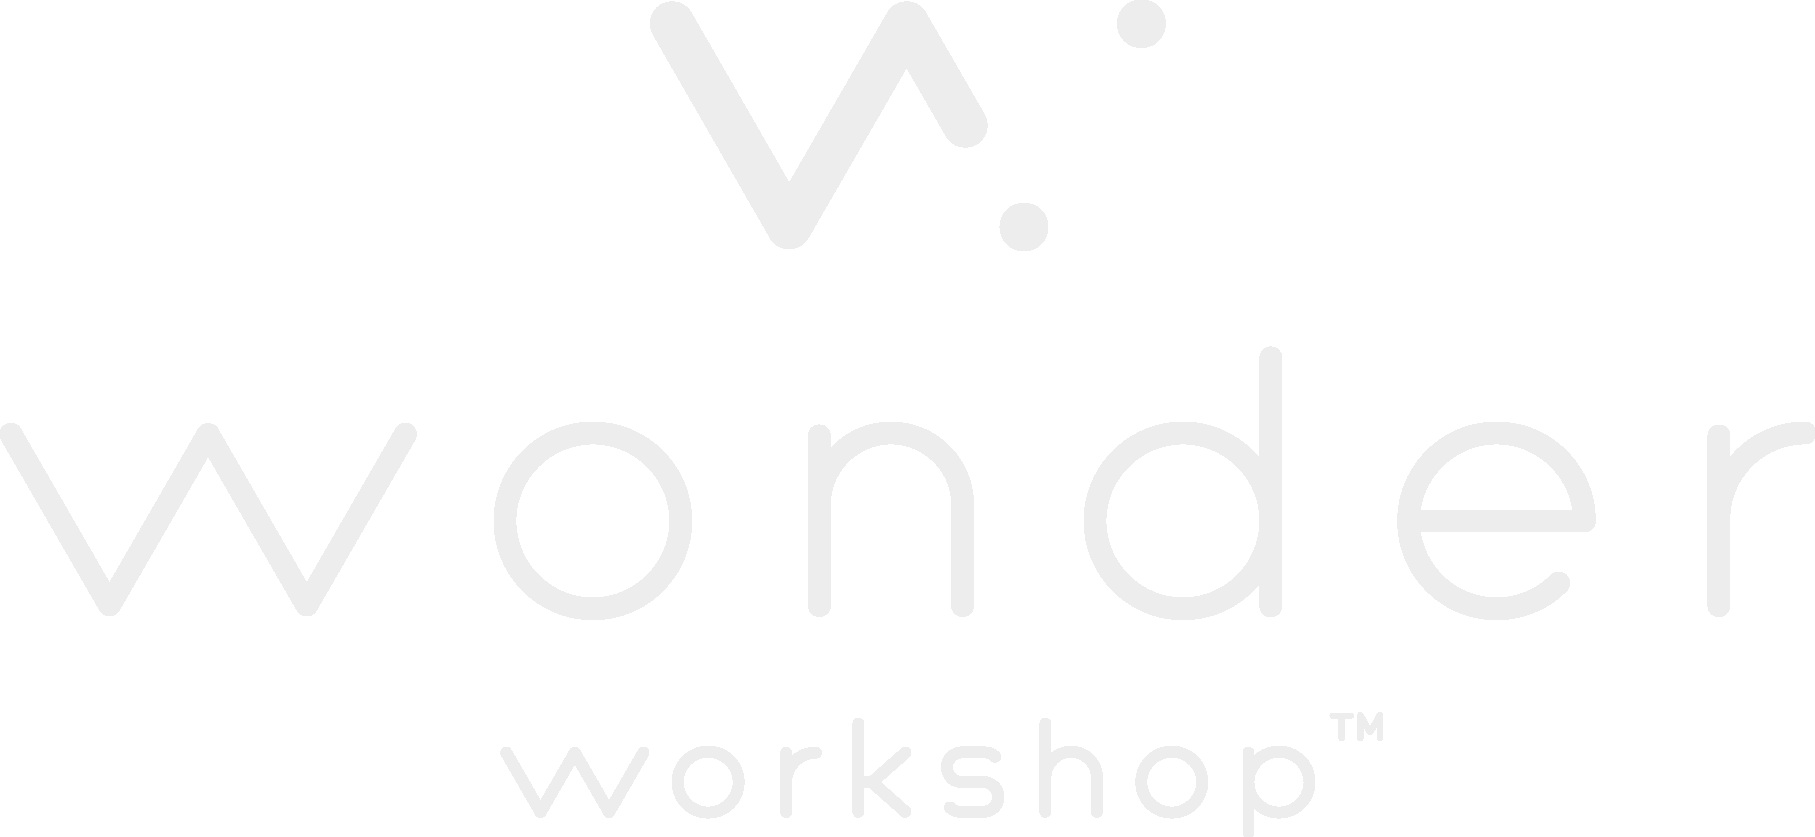 wonderworkshop_logo.png